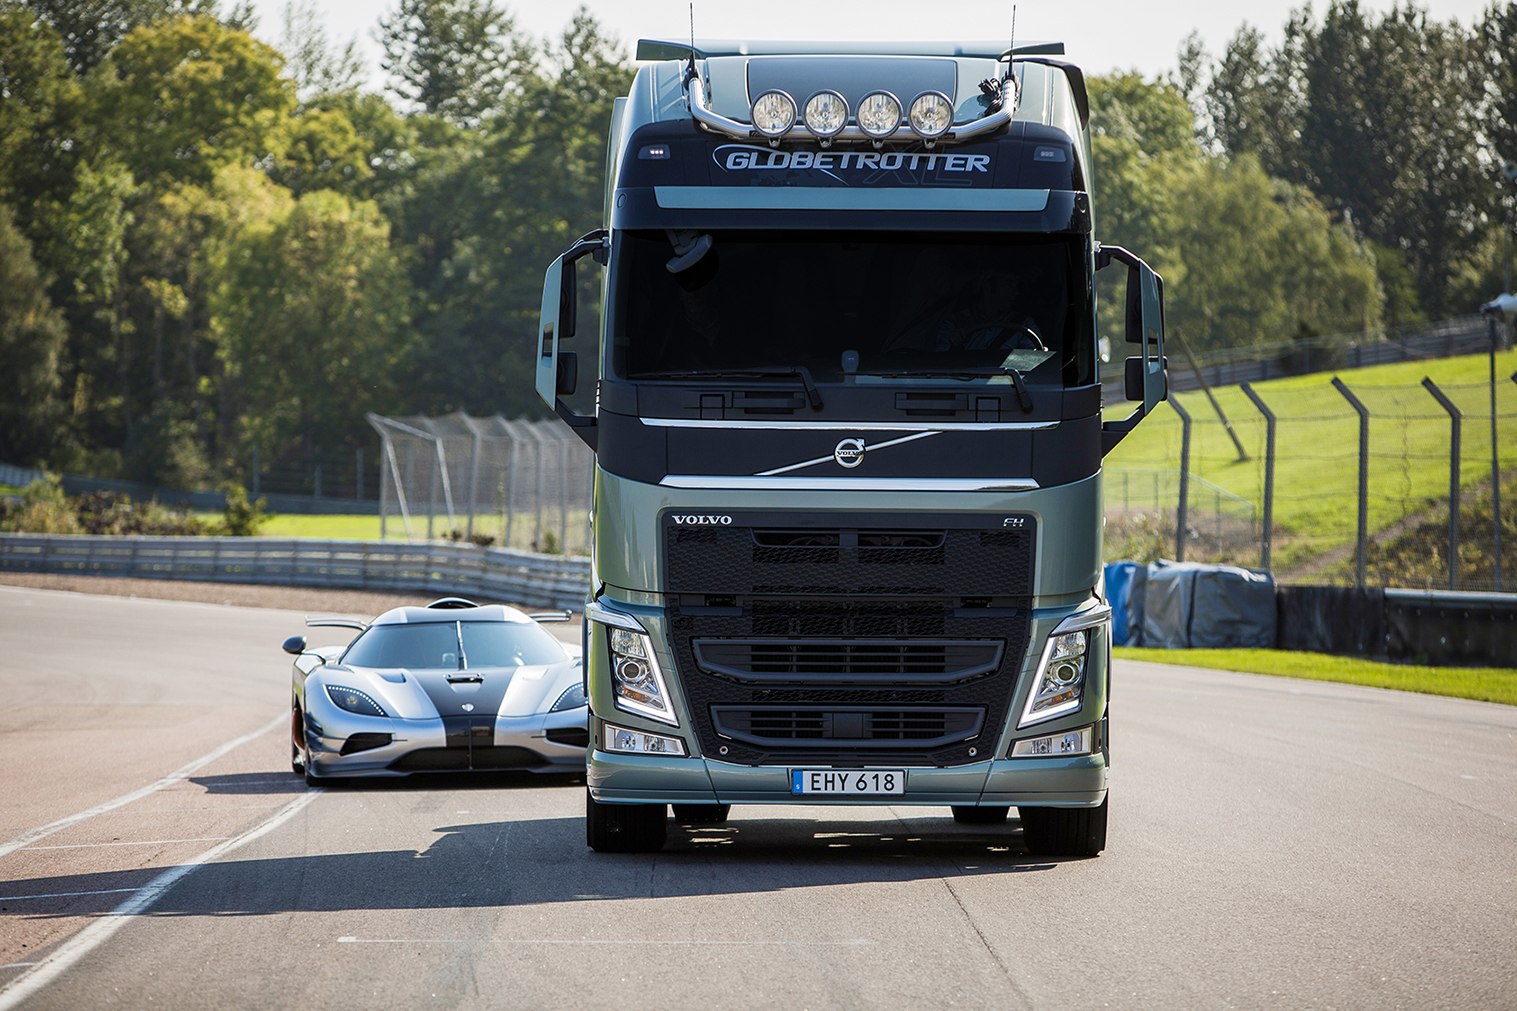 Volvo Trucks Unique I Shift Dual Clutch Gearbox Is Tested In The New Movie V Koenigsegg Film A Fh Comes Up Against